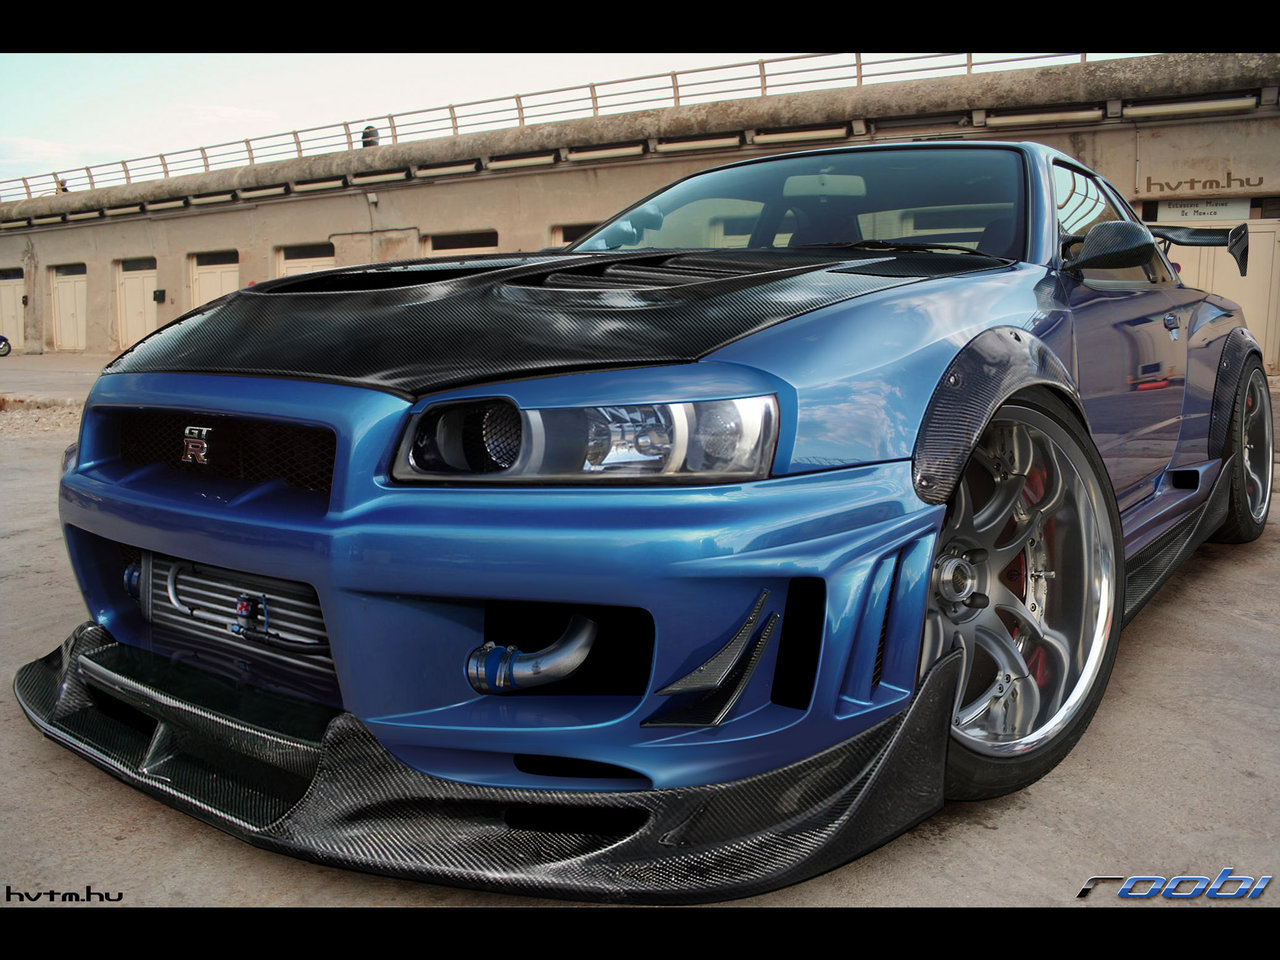 Nissan skyline pictures